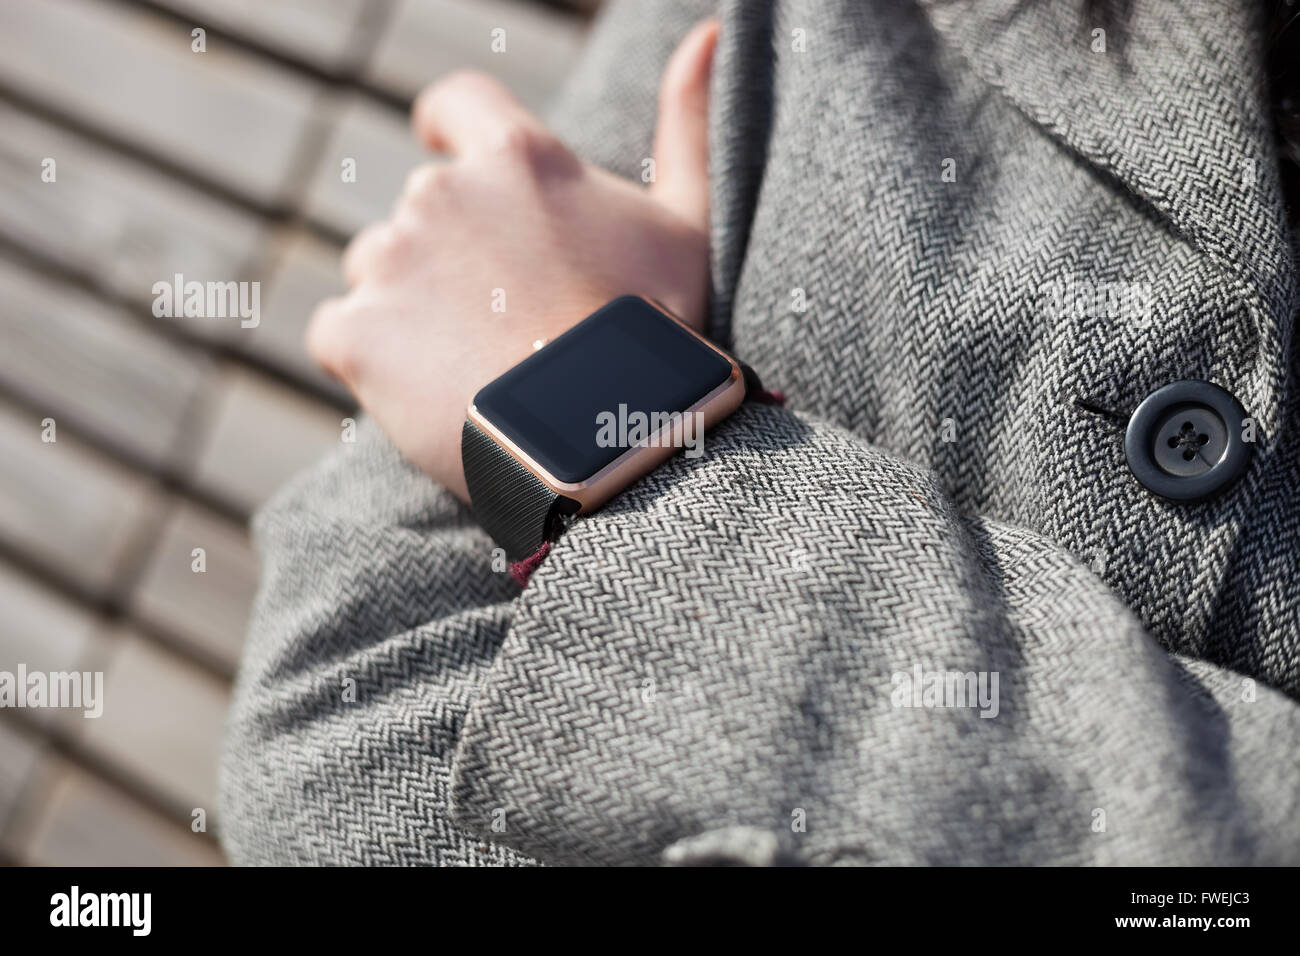 Woman in grey coat wearing modern smart wrist watch. This person is always connected to social media and internet - Stock Image